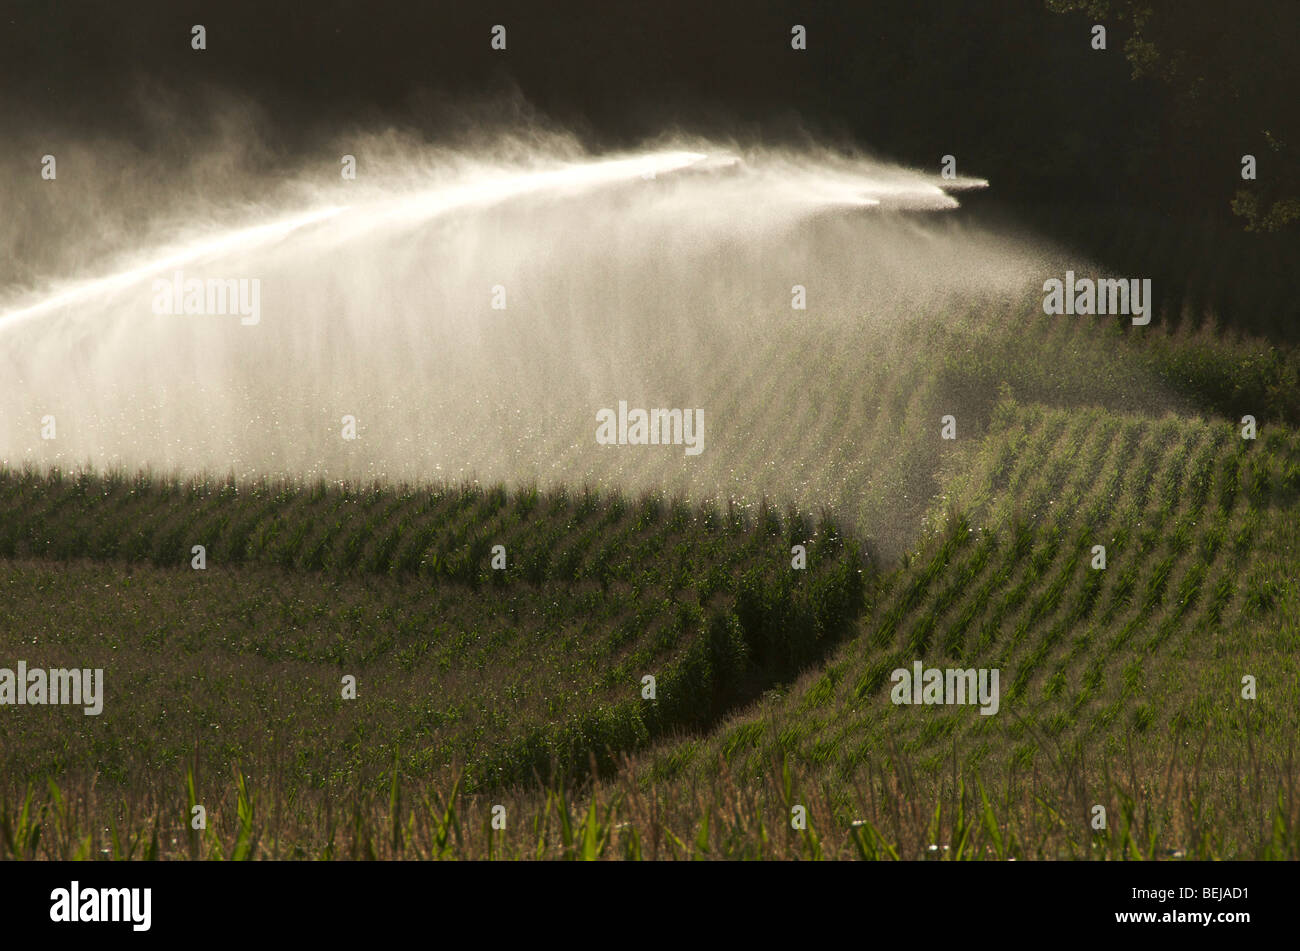 Sprinkler installation in a field of maize - Stock Image